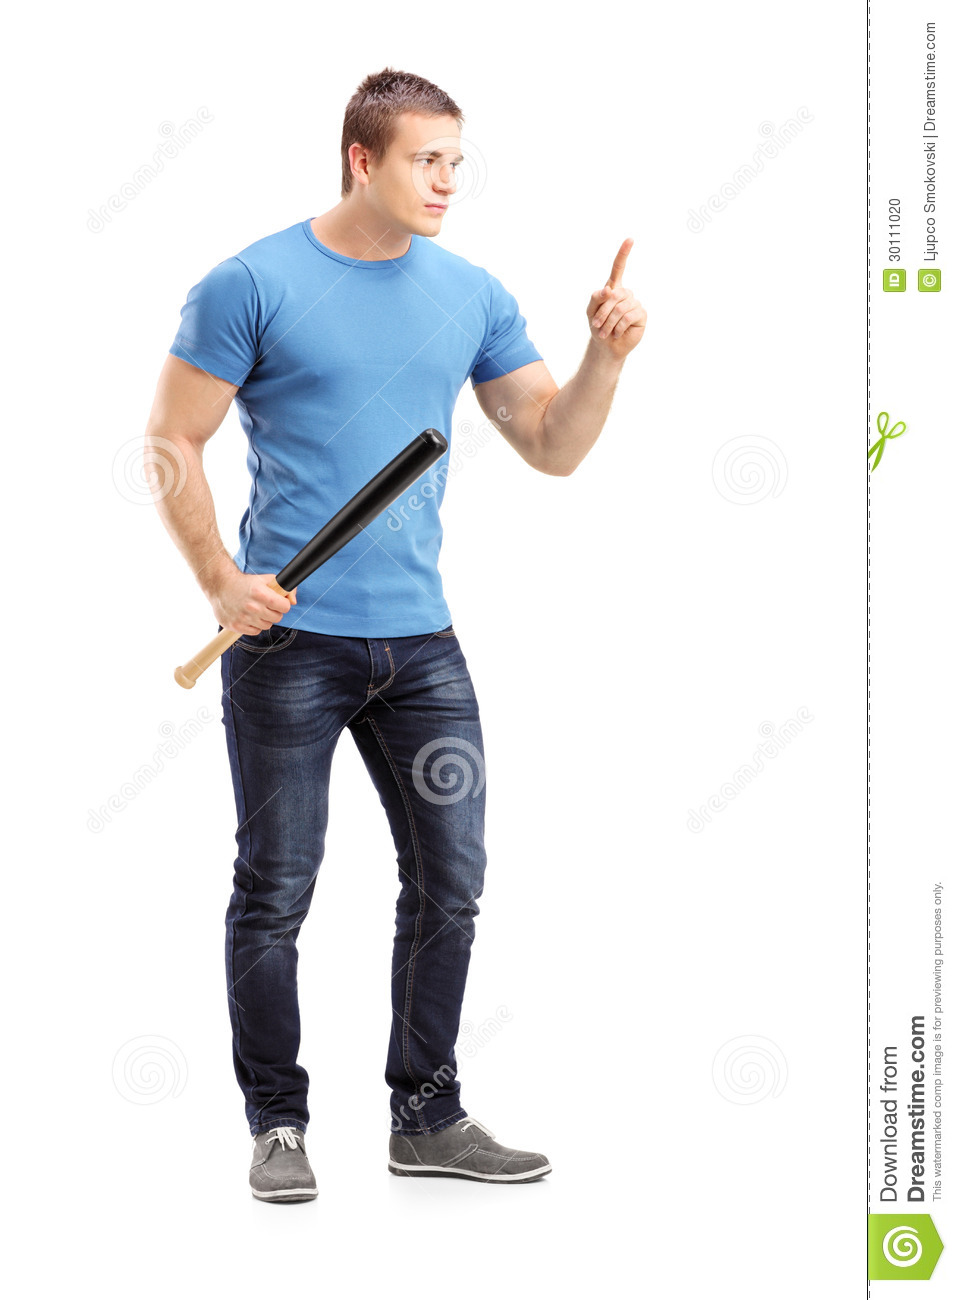 full length portrait of a violent young man holding a